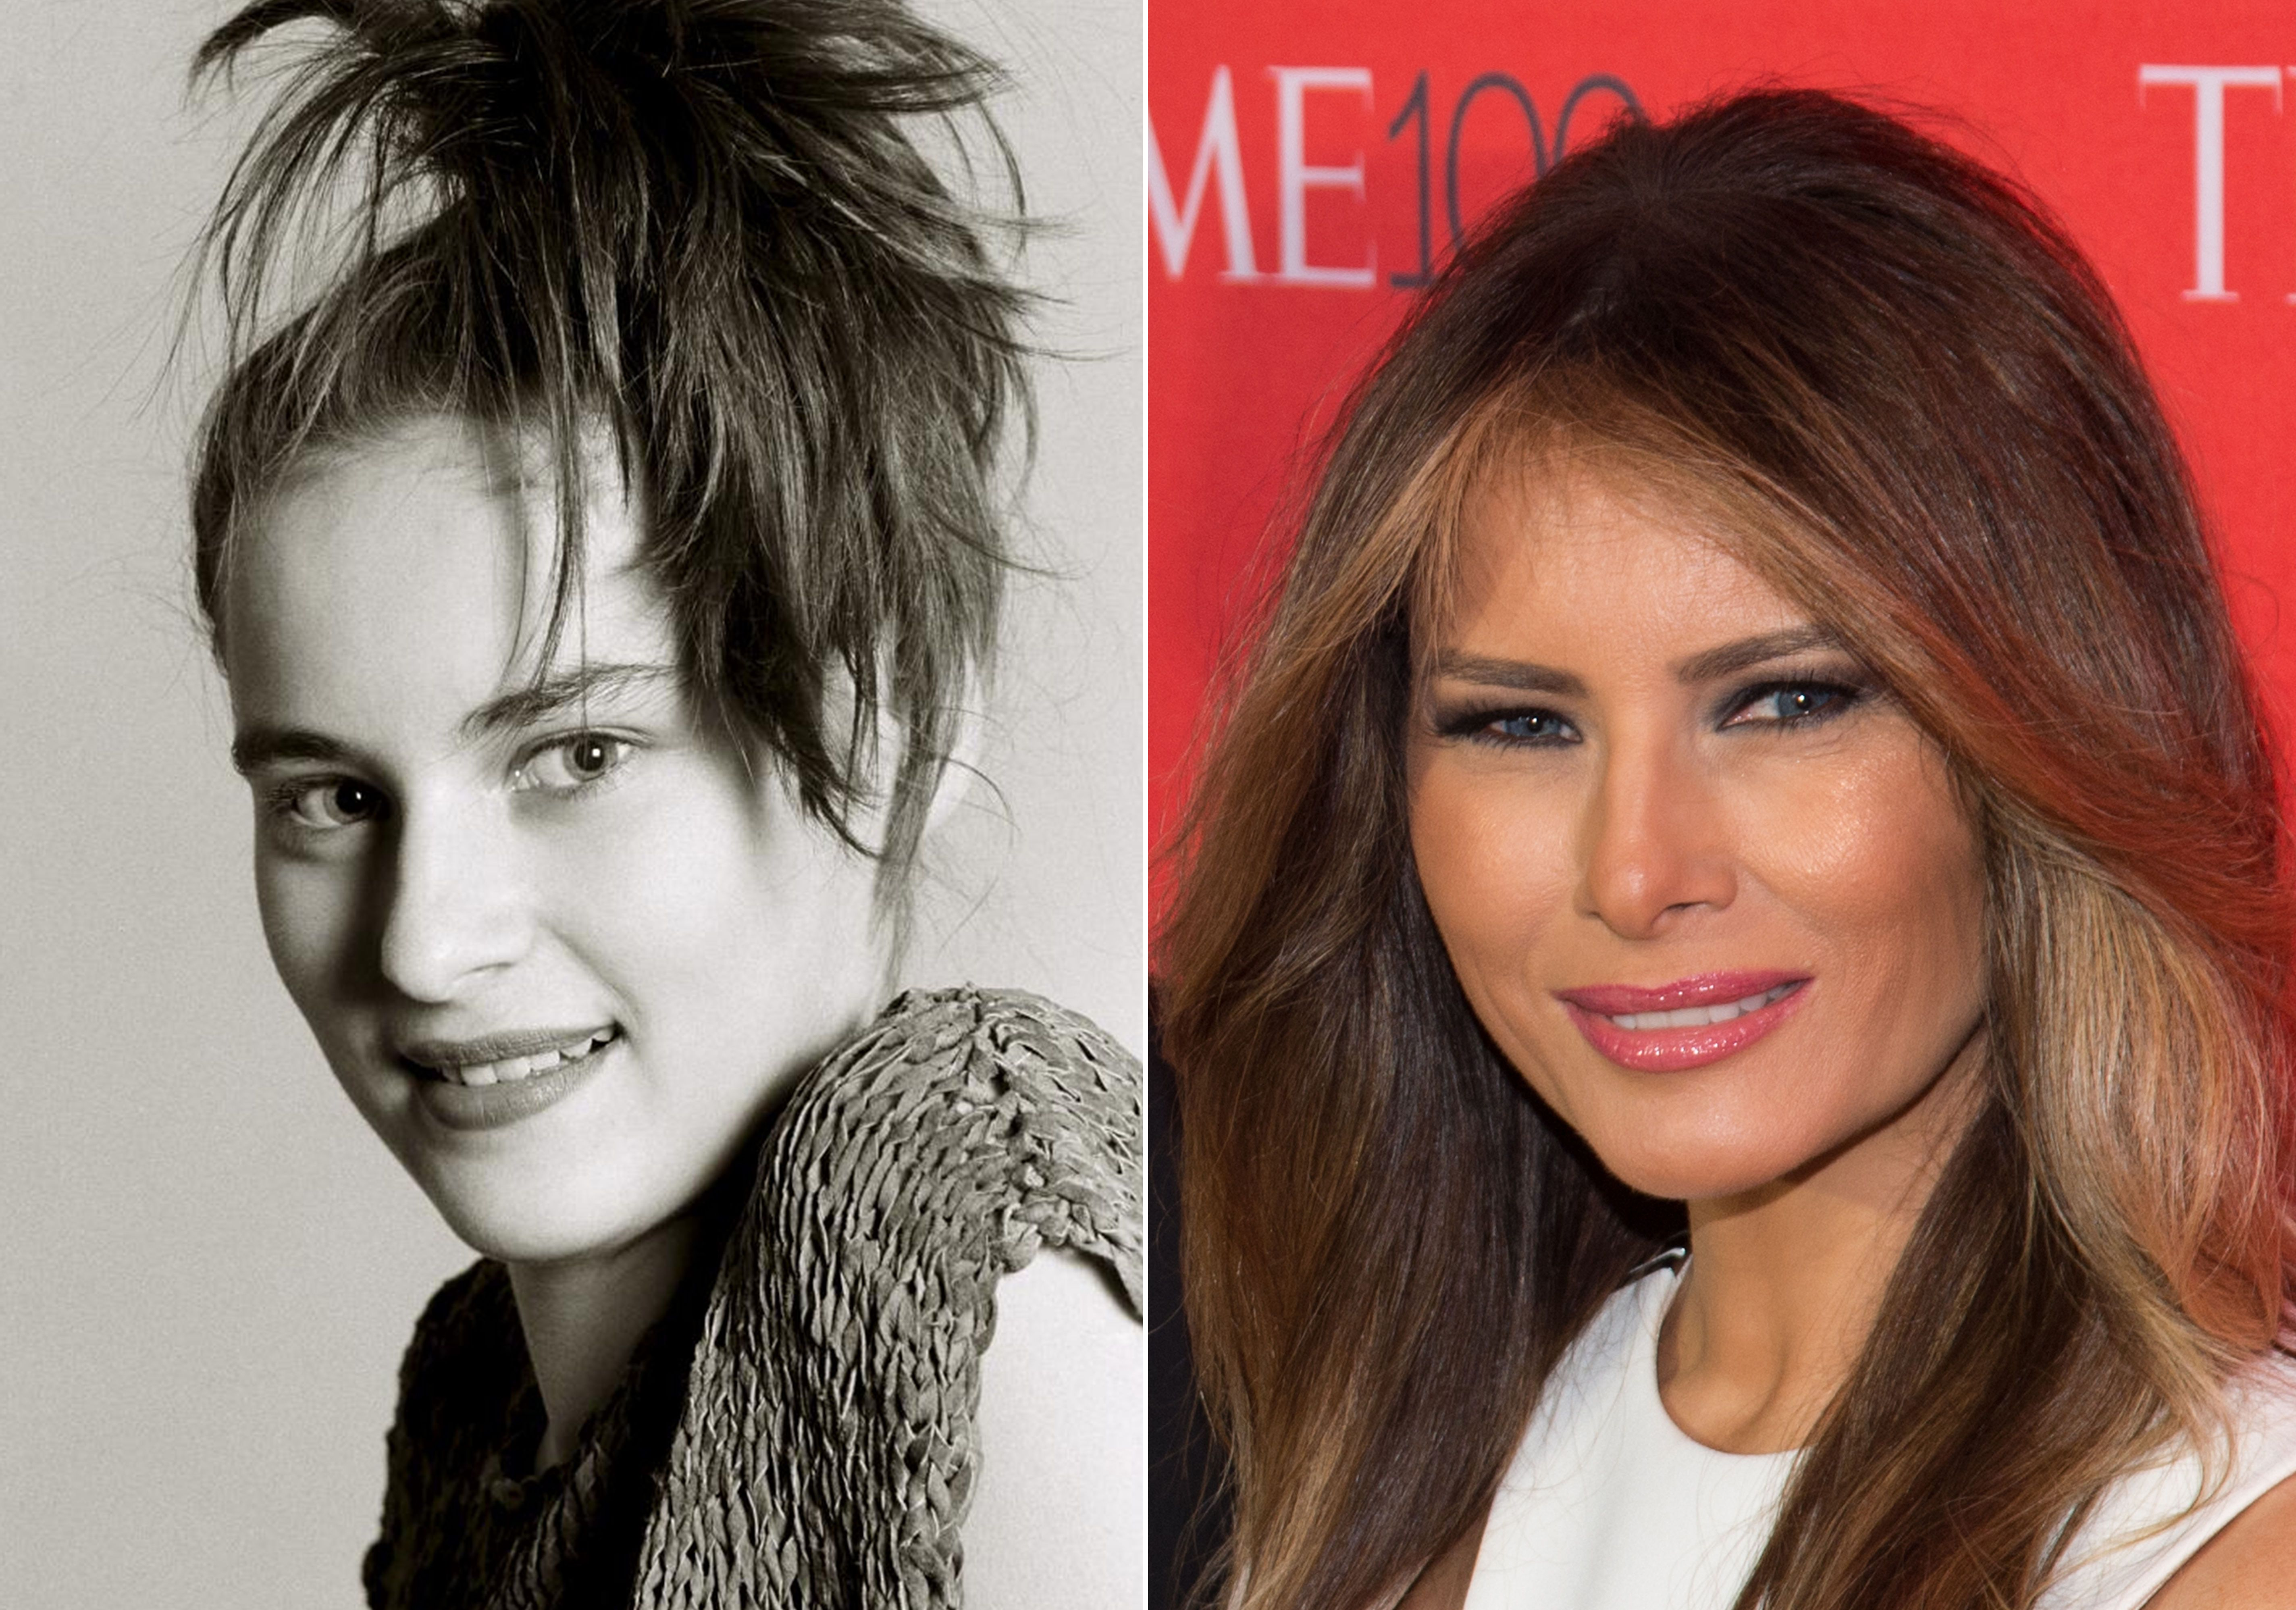 Melania Trump in 1987 (left) and in 2016 (right).